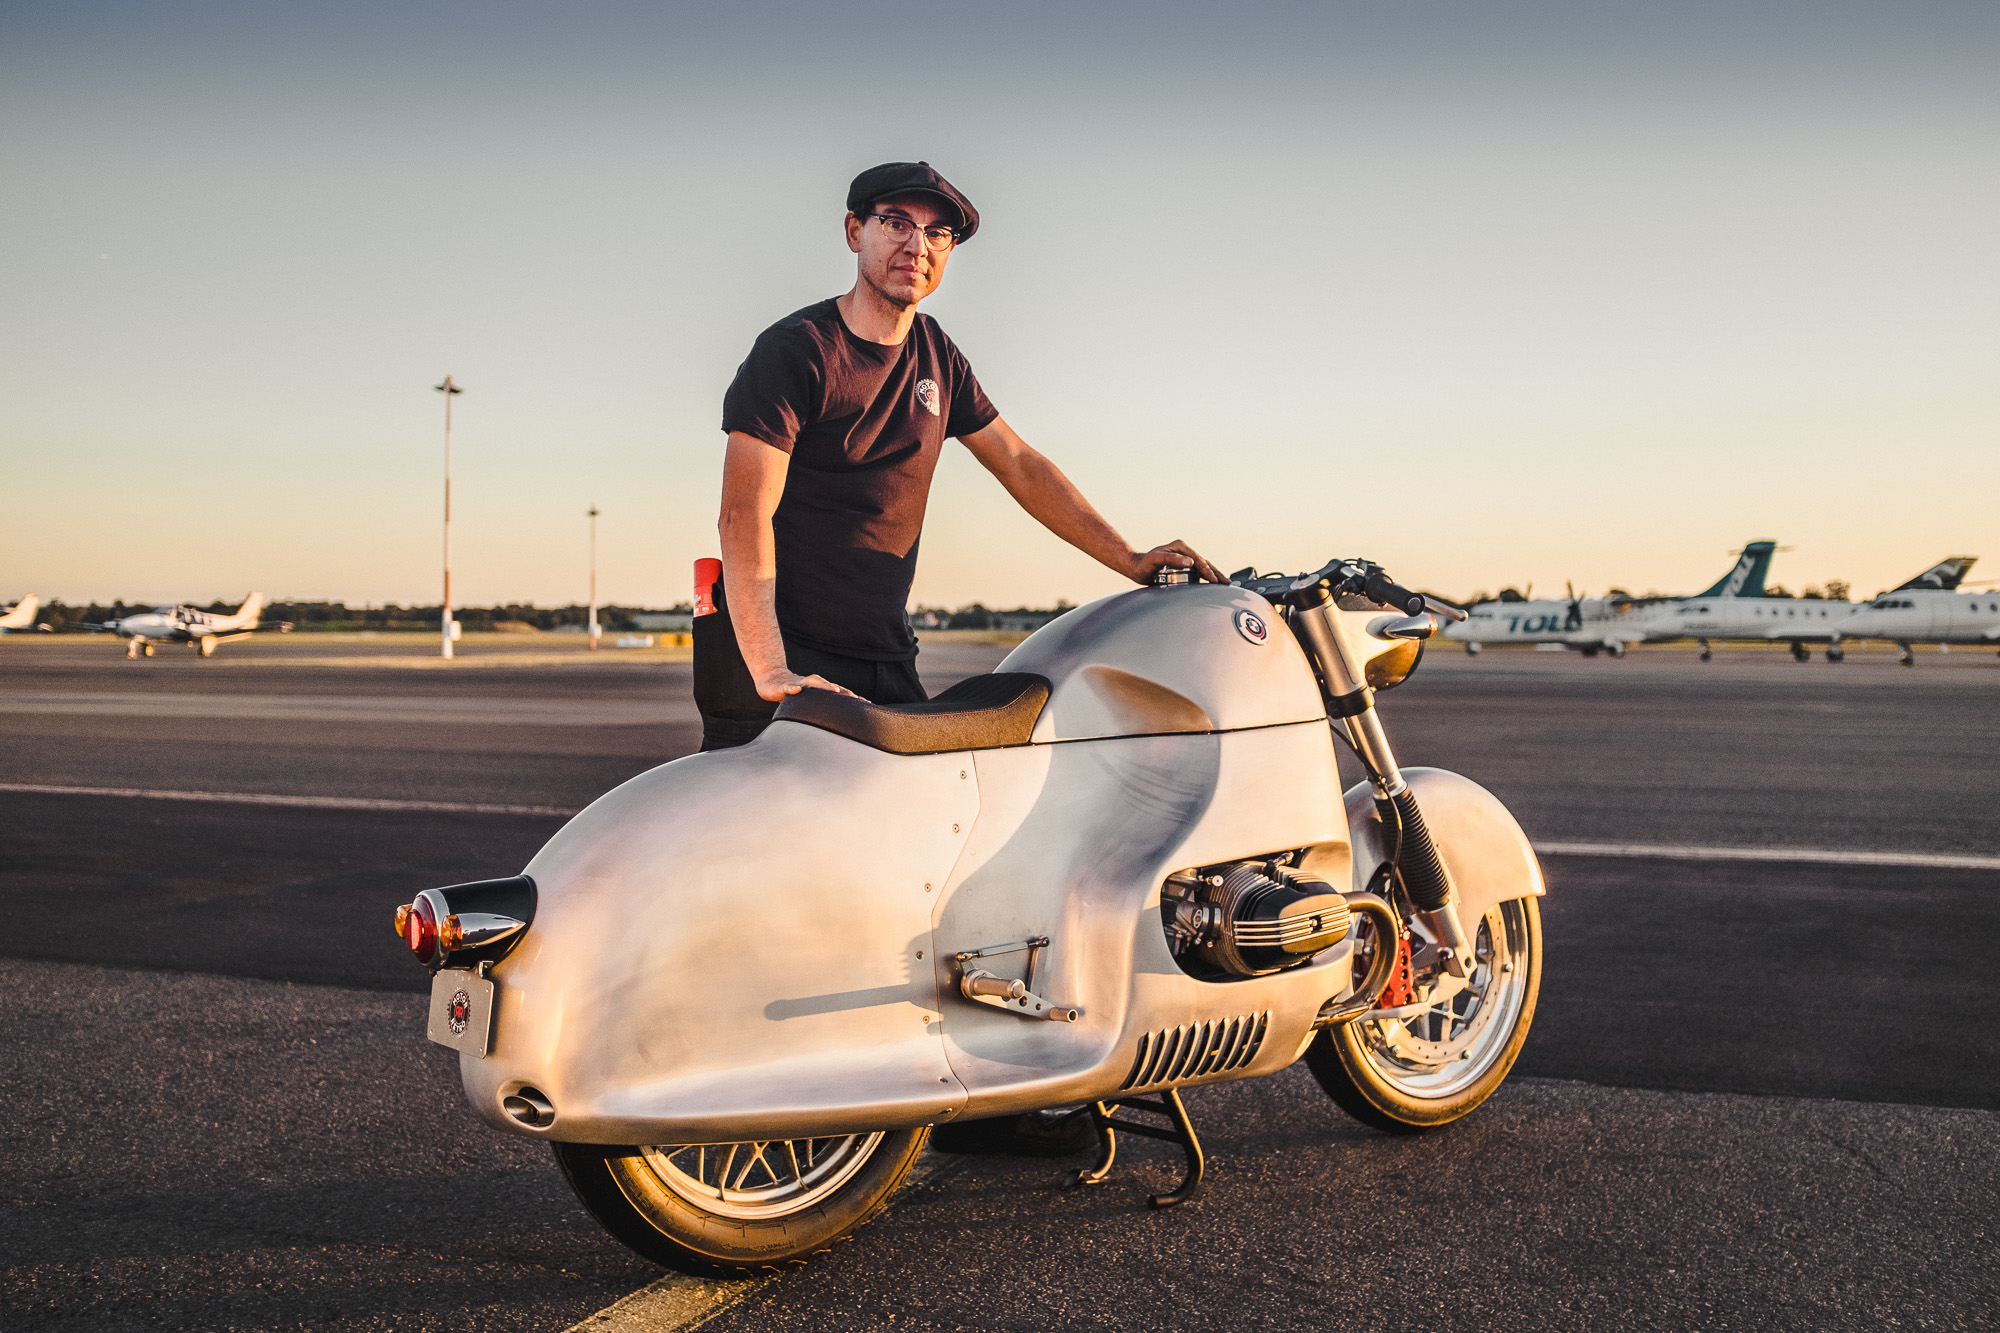 Georgio Rimi from MotorRetro and his 'Aero' BMW R100RS streamliner at Bankstown airport in Sydney